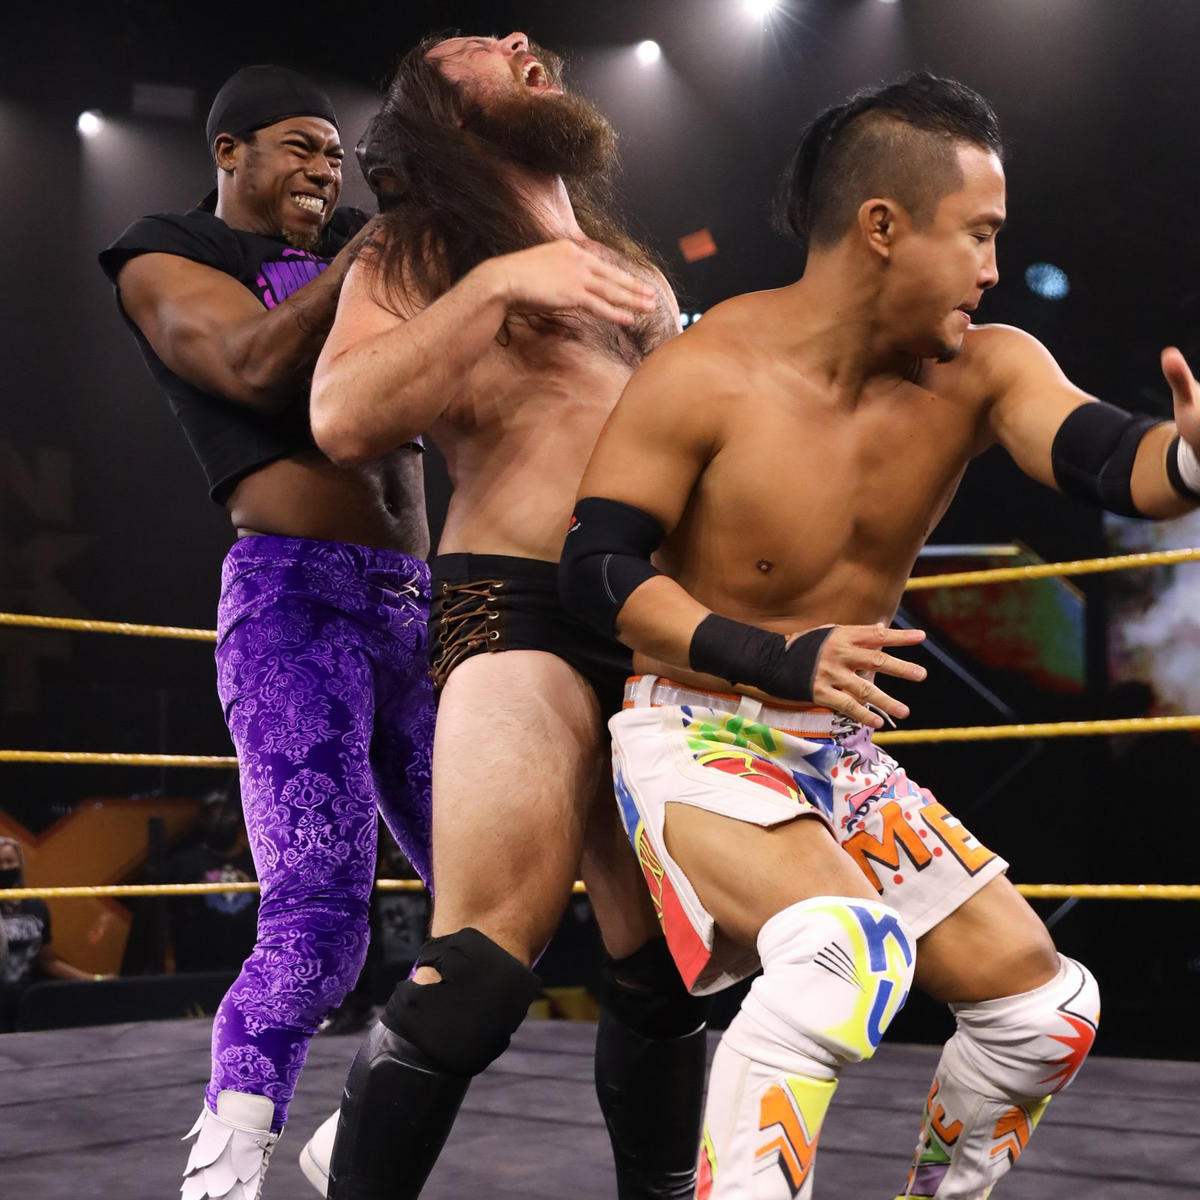 The must-see images of NXT, Aug. 12, 2020: photos | WWE